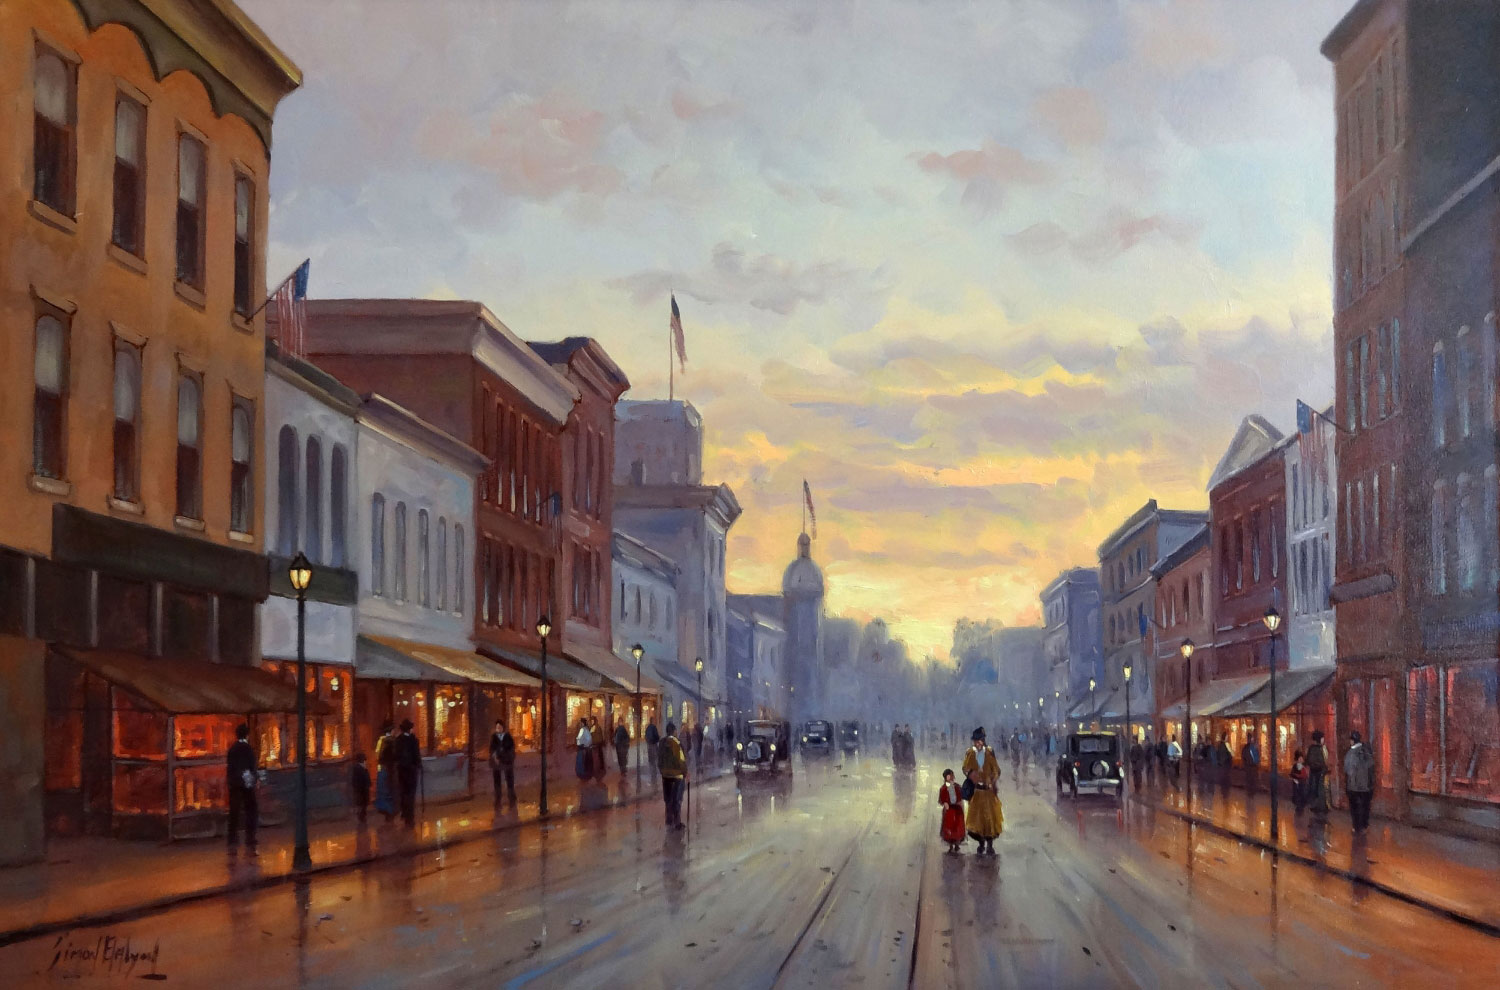 OLD RED BANK  oil on canvas, 36 x 24 in.